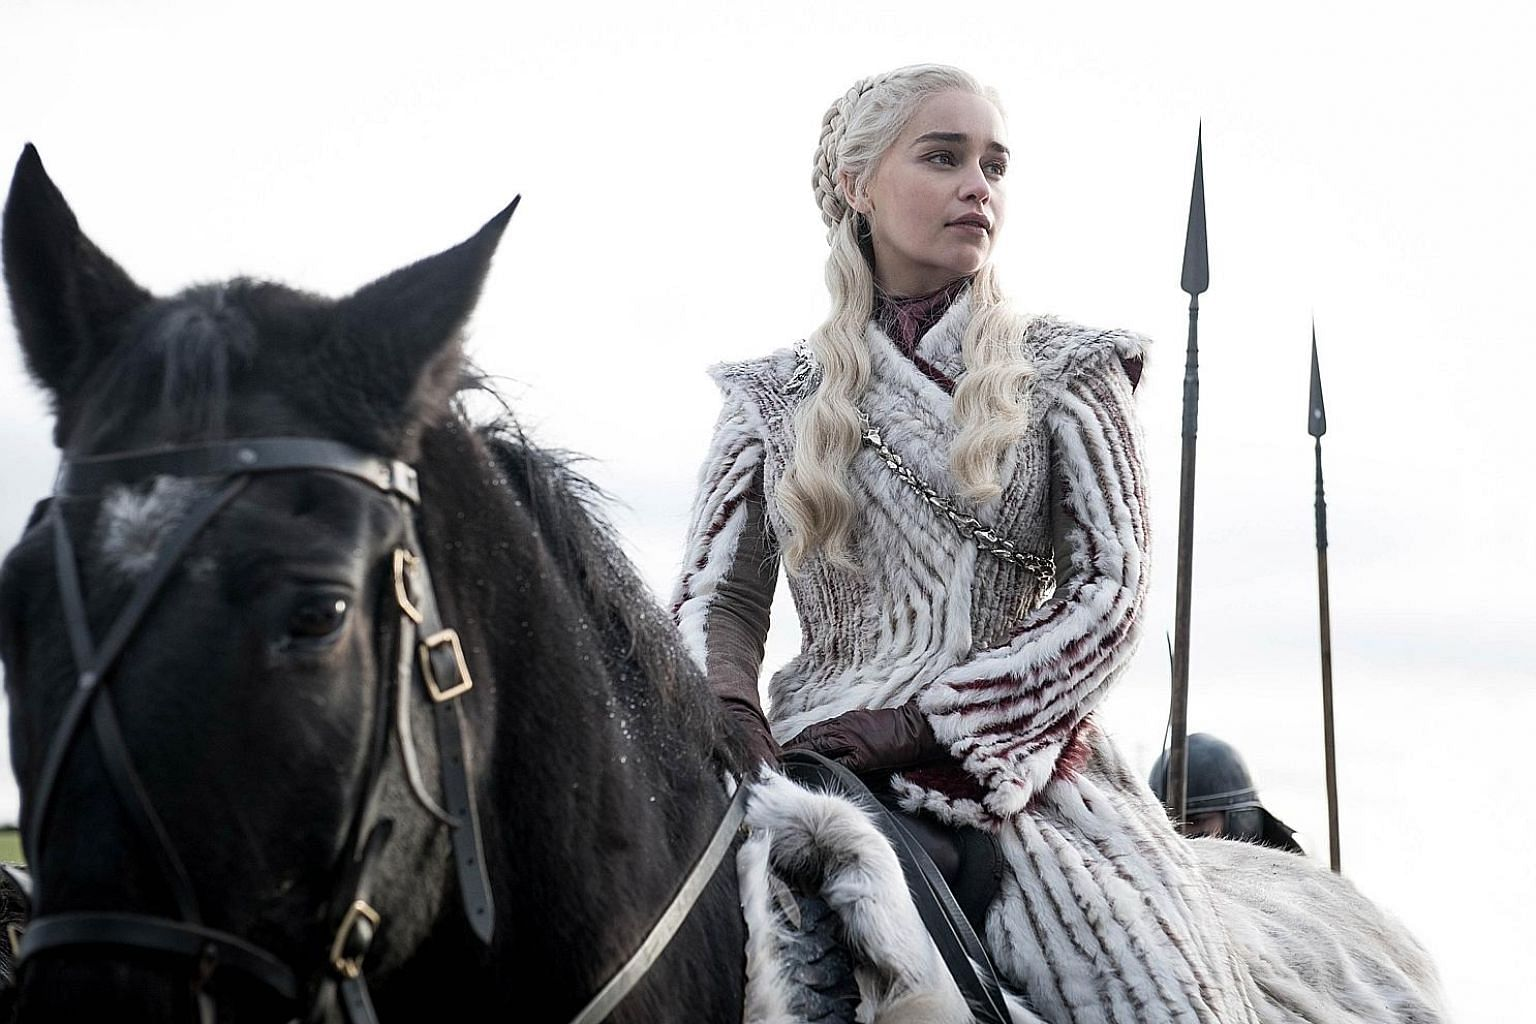 Emilia Clarke plays the role of Daenerys Targaryen in HBO's Game Of Thrones. The fire-and-ice fantasy world of Game Of Thrones may be set in feudal times, but the heady rise of women leaders on the show parallels that of women leaders around the glob